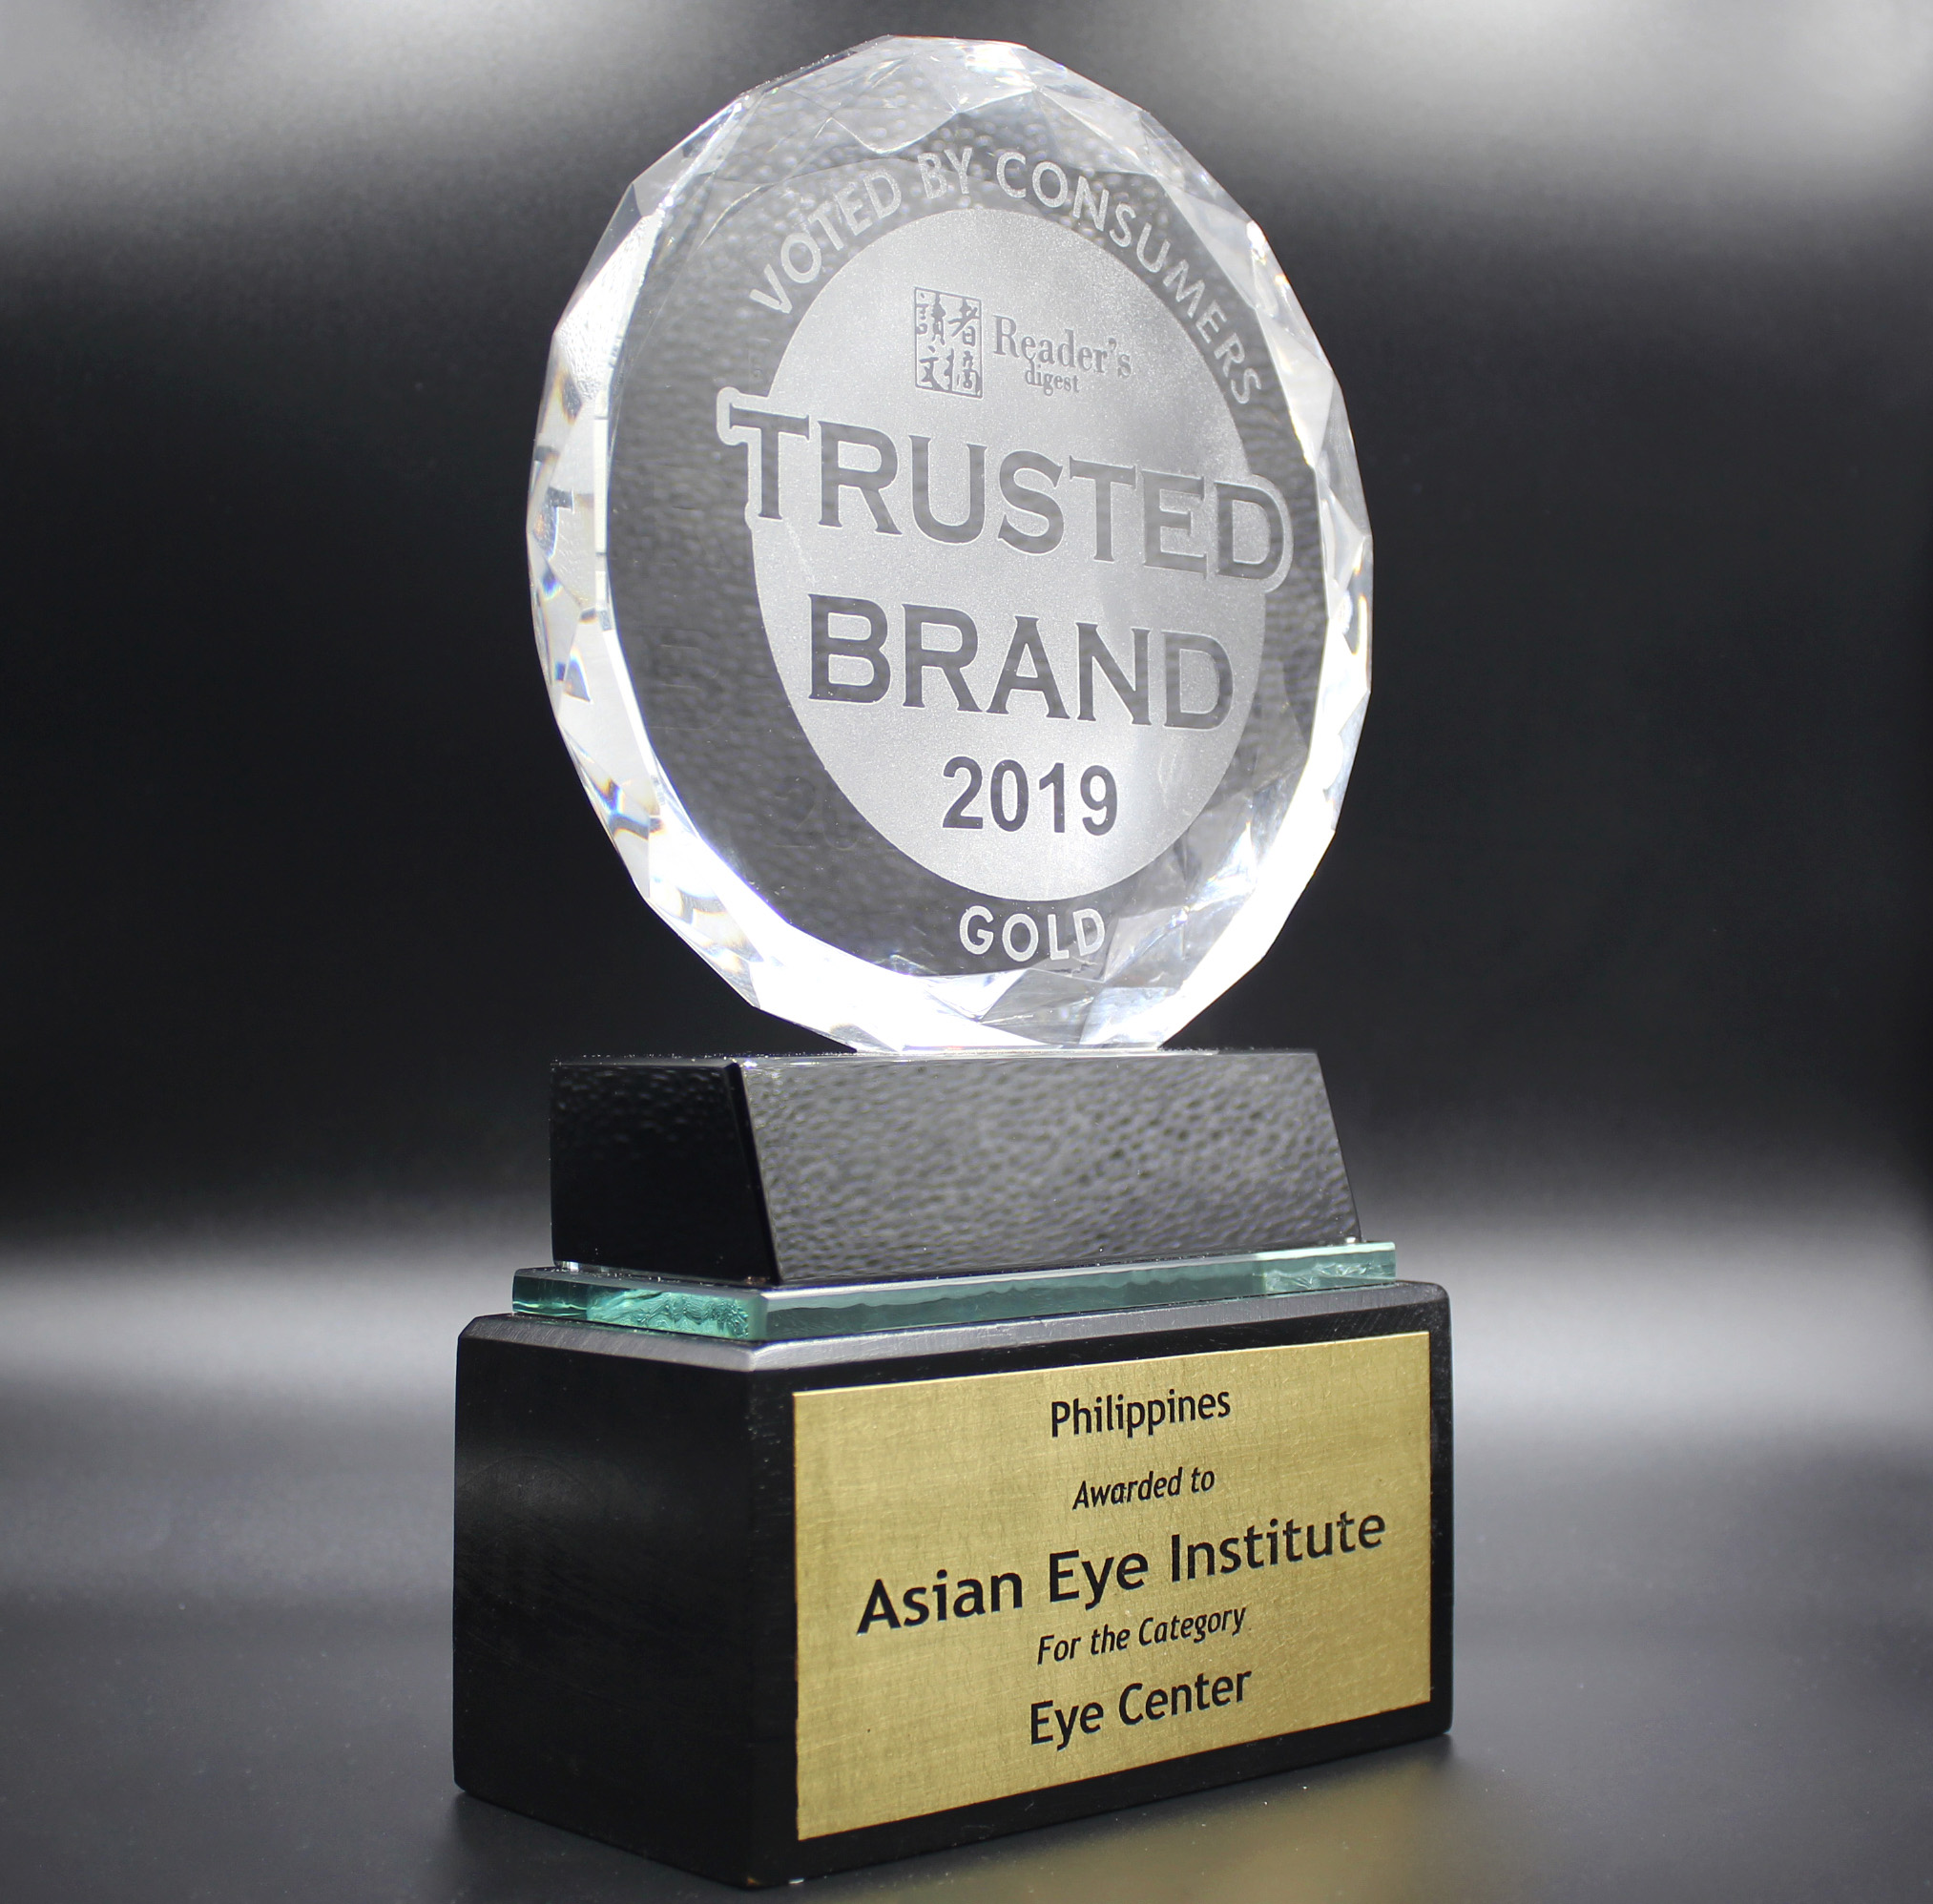 Asian Eye, which won its seventh 'Reader's Digest' Trusted Brand Gold Award, was the sole winner in the eye center category